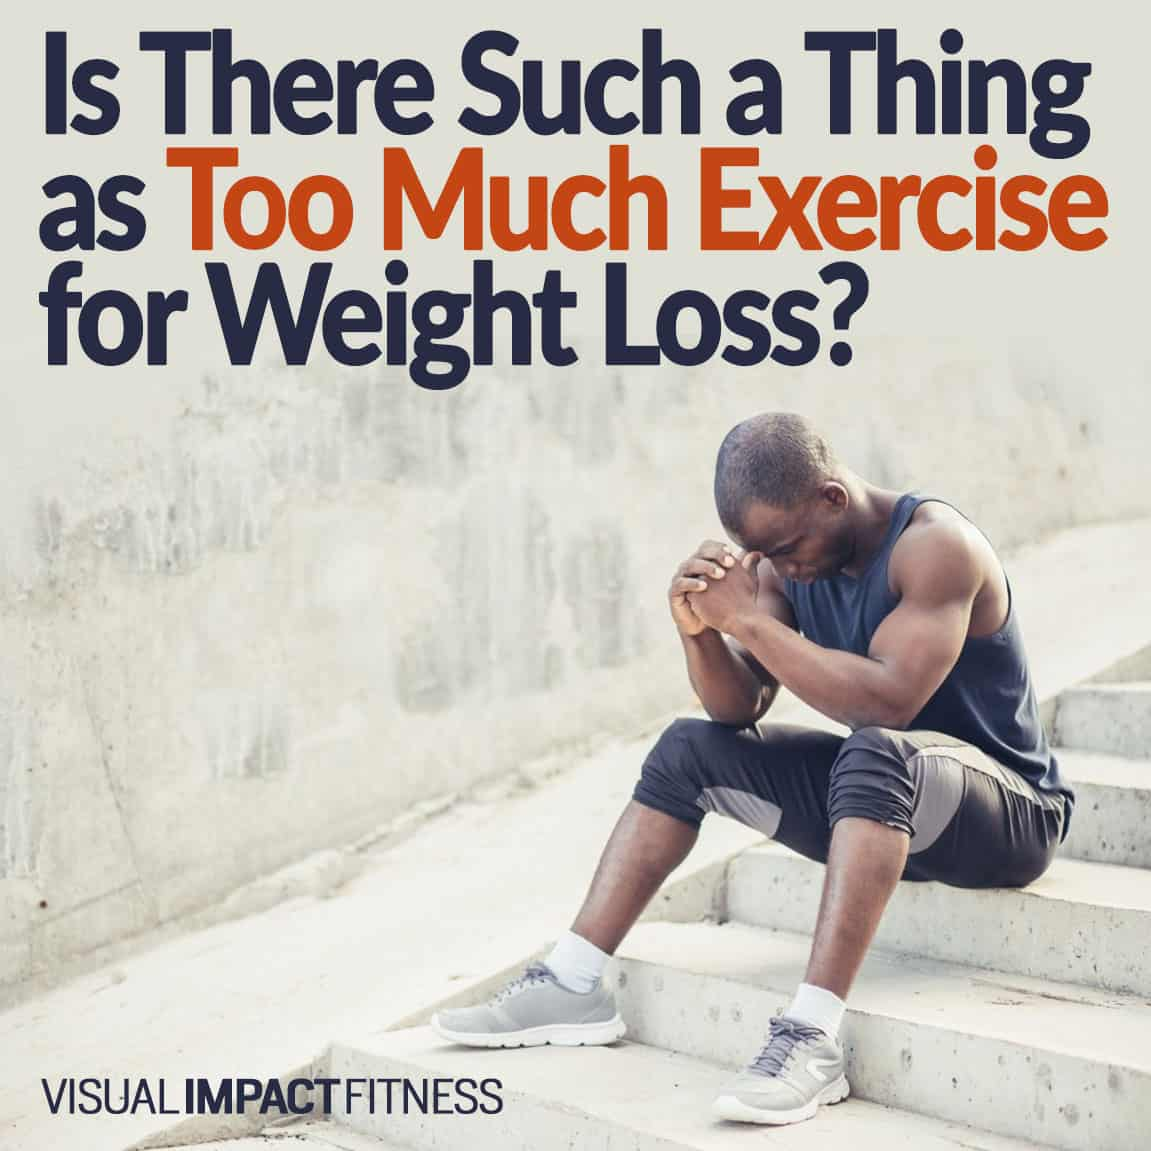 Is There Such a Thing as Too Much Exercise for Weight Loss?